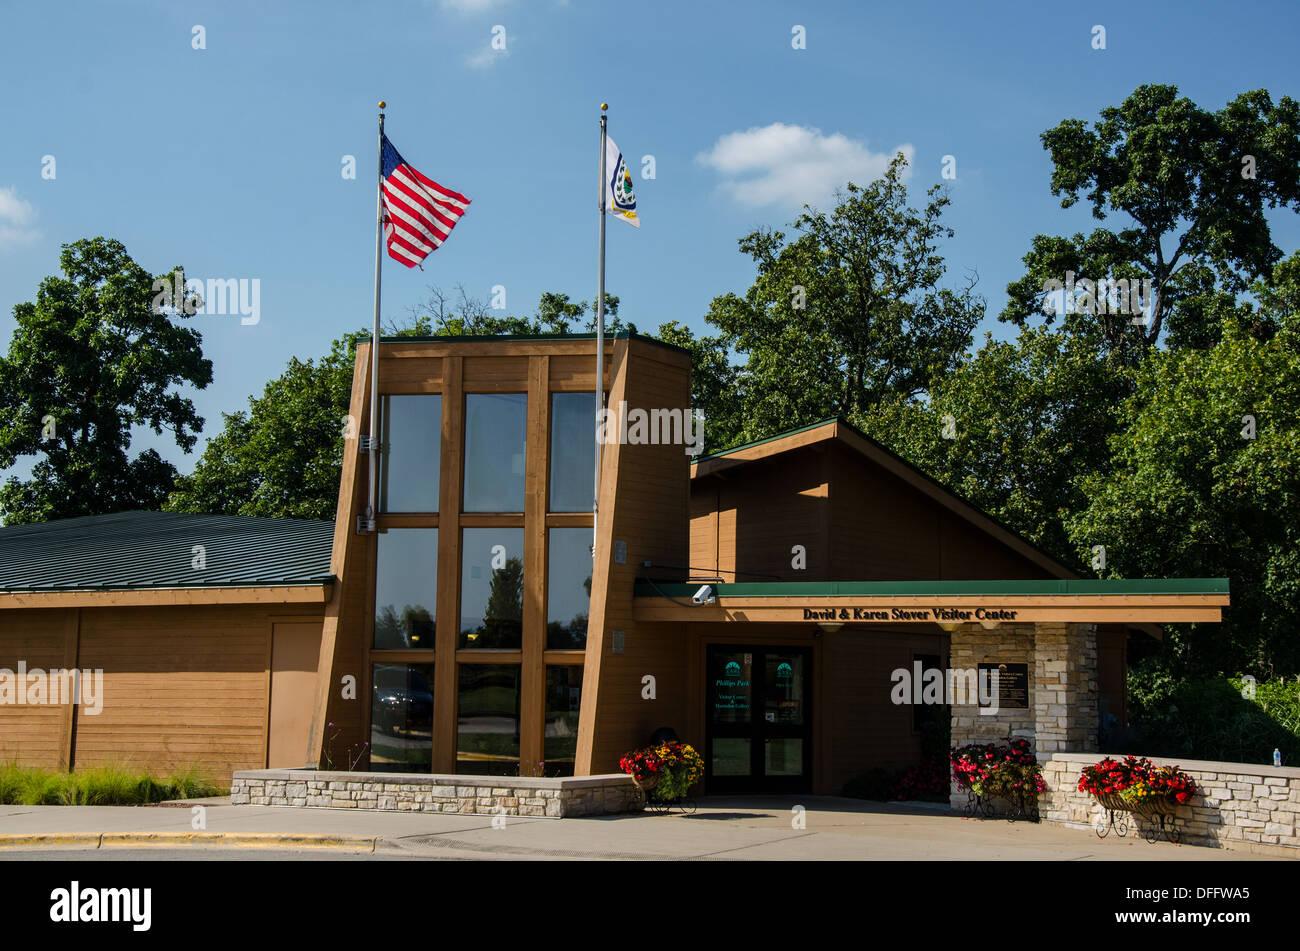 Visitor Center at Phillips Park in Aurora, Illinois, a town along the Lincoln Highway. - Stock Image